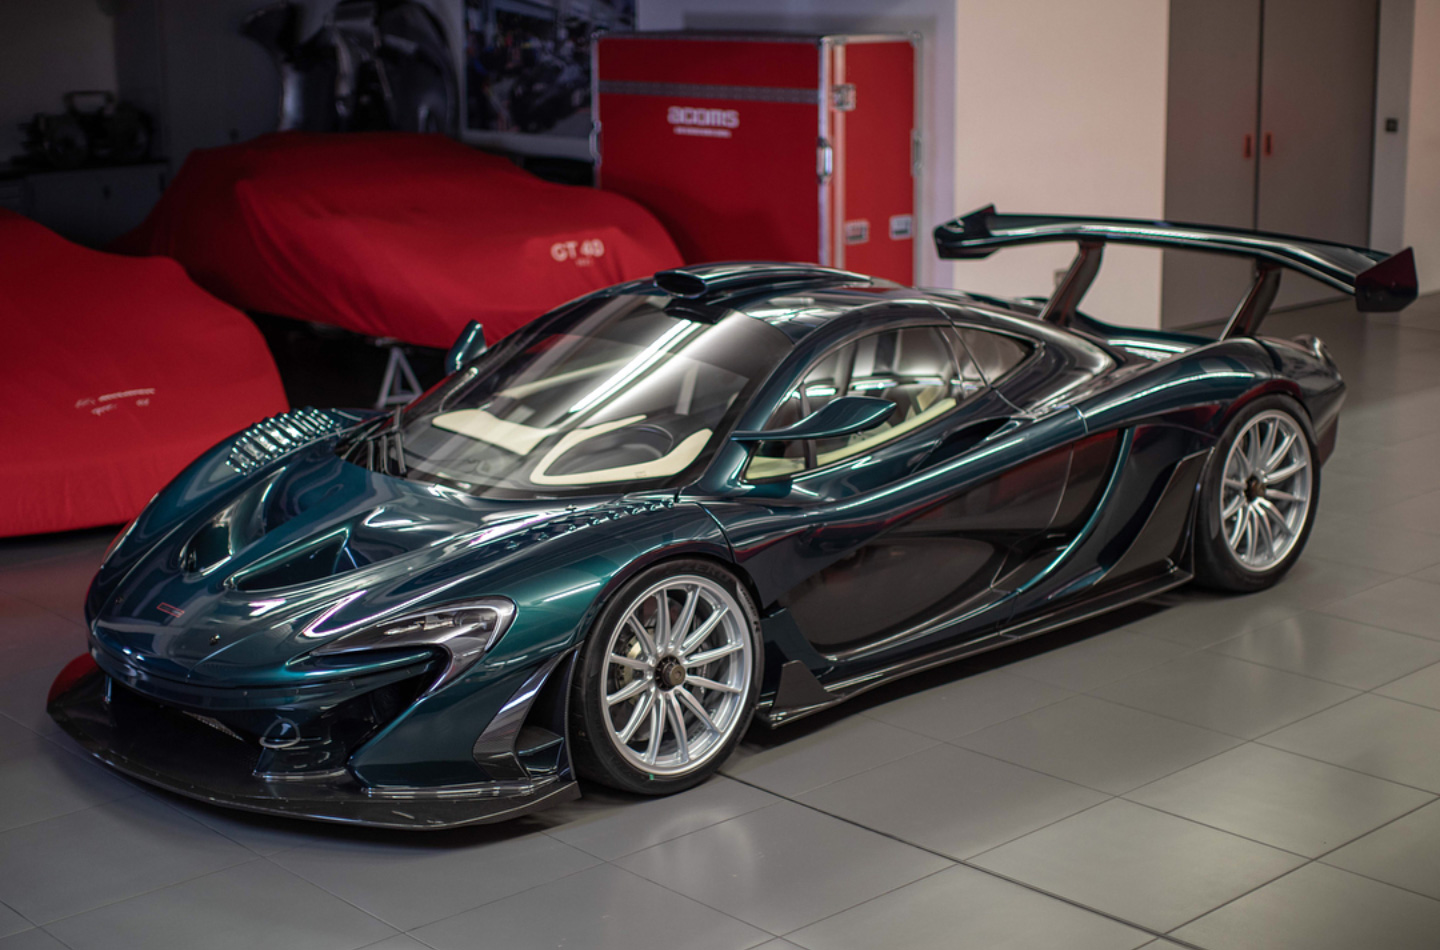 British Tuning Firm Creates Its Own Mclaren P1 Longtail